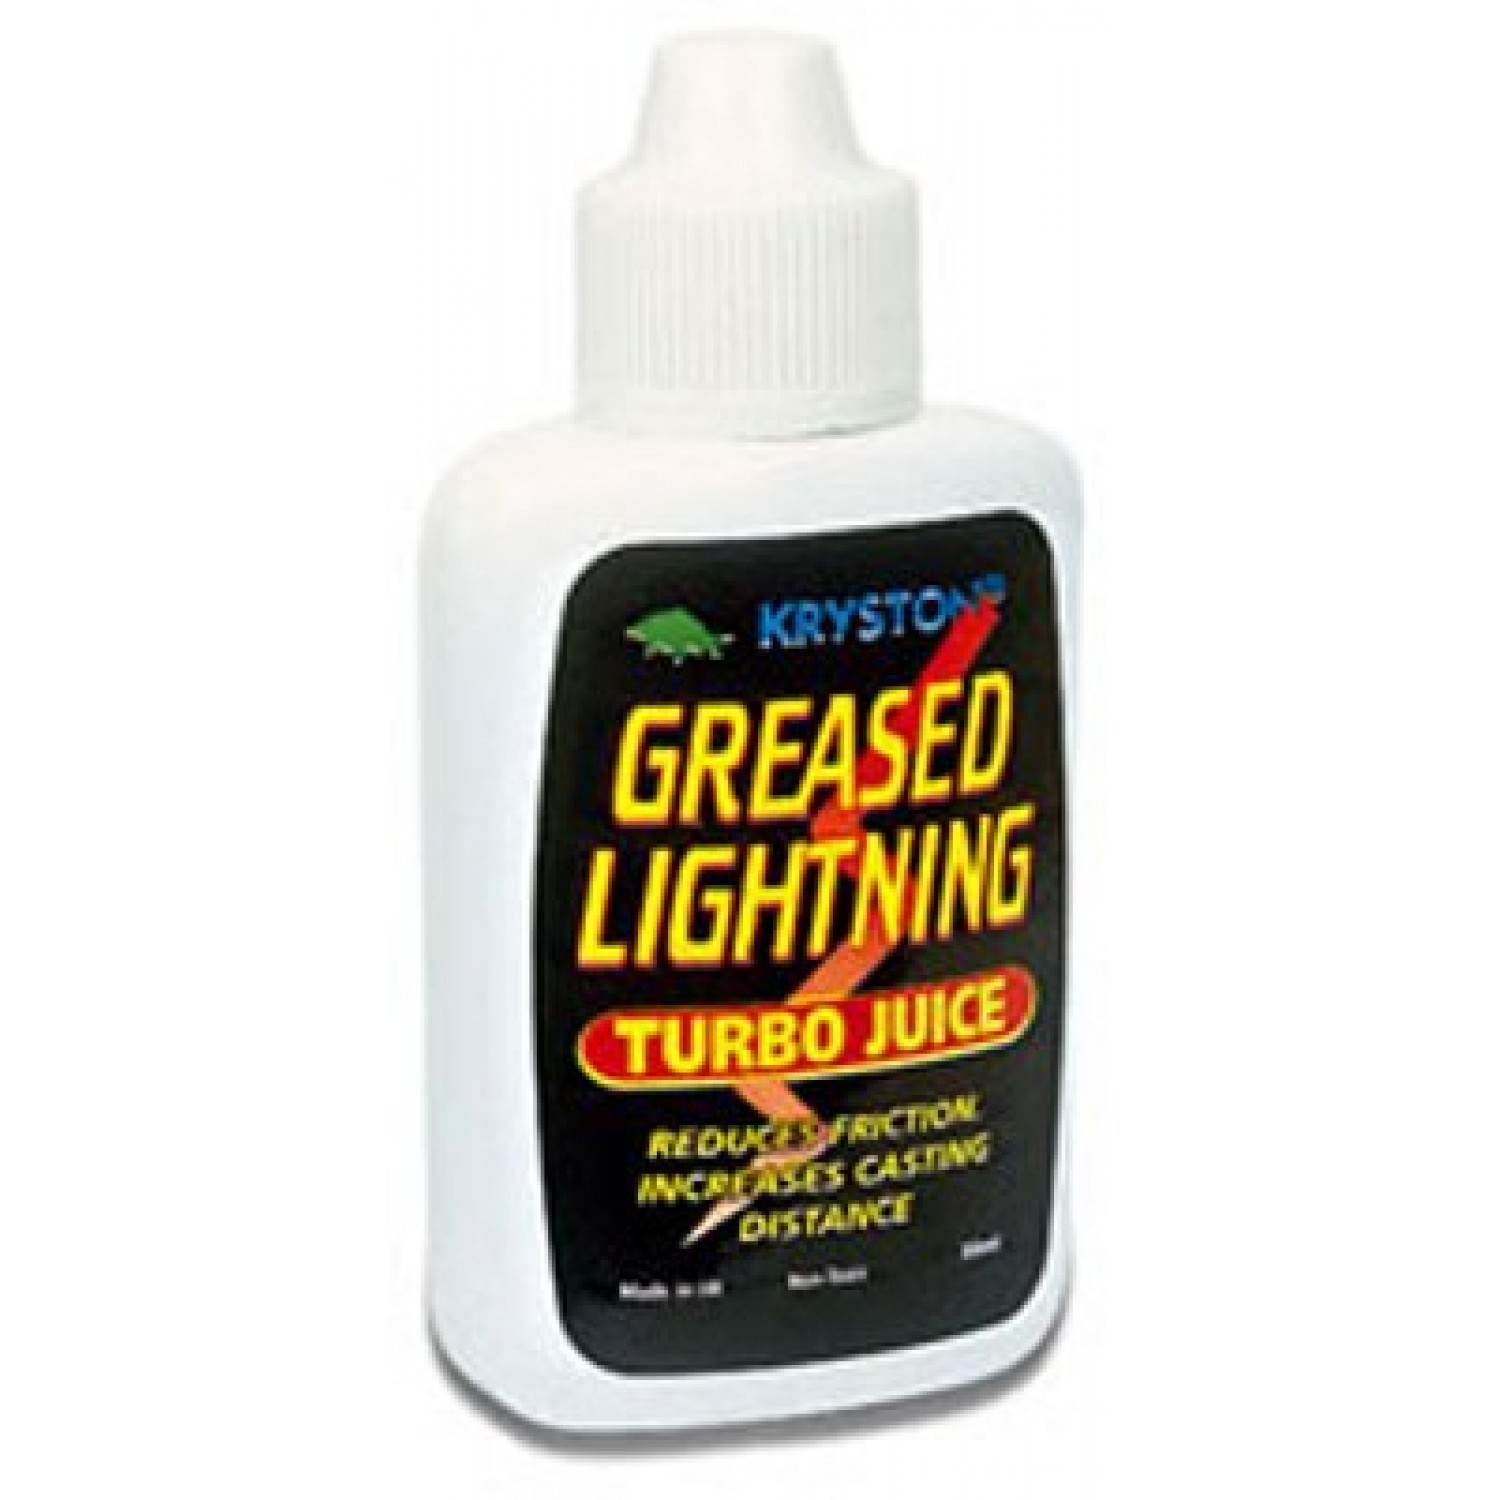 Kryston - Greased Lightning